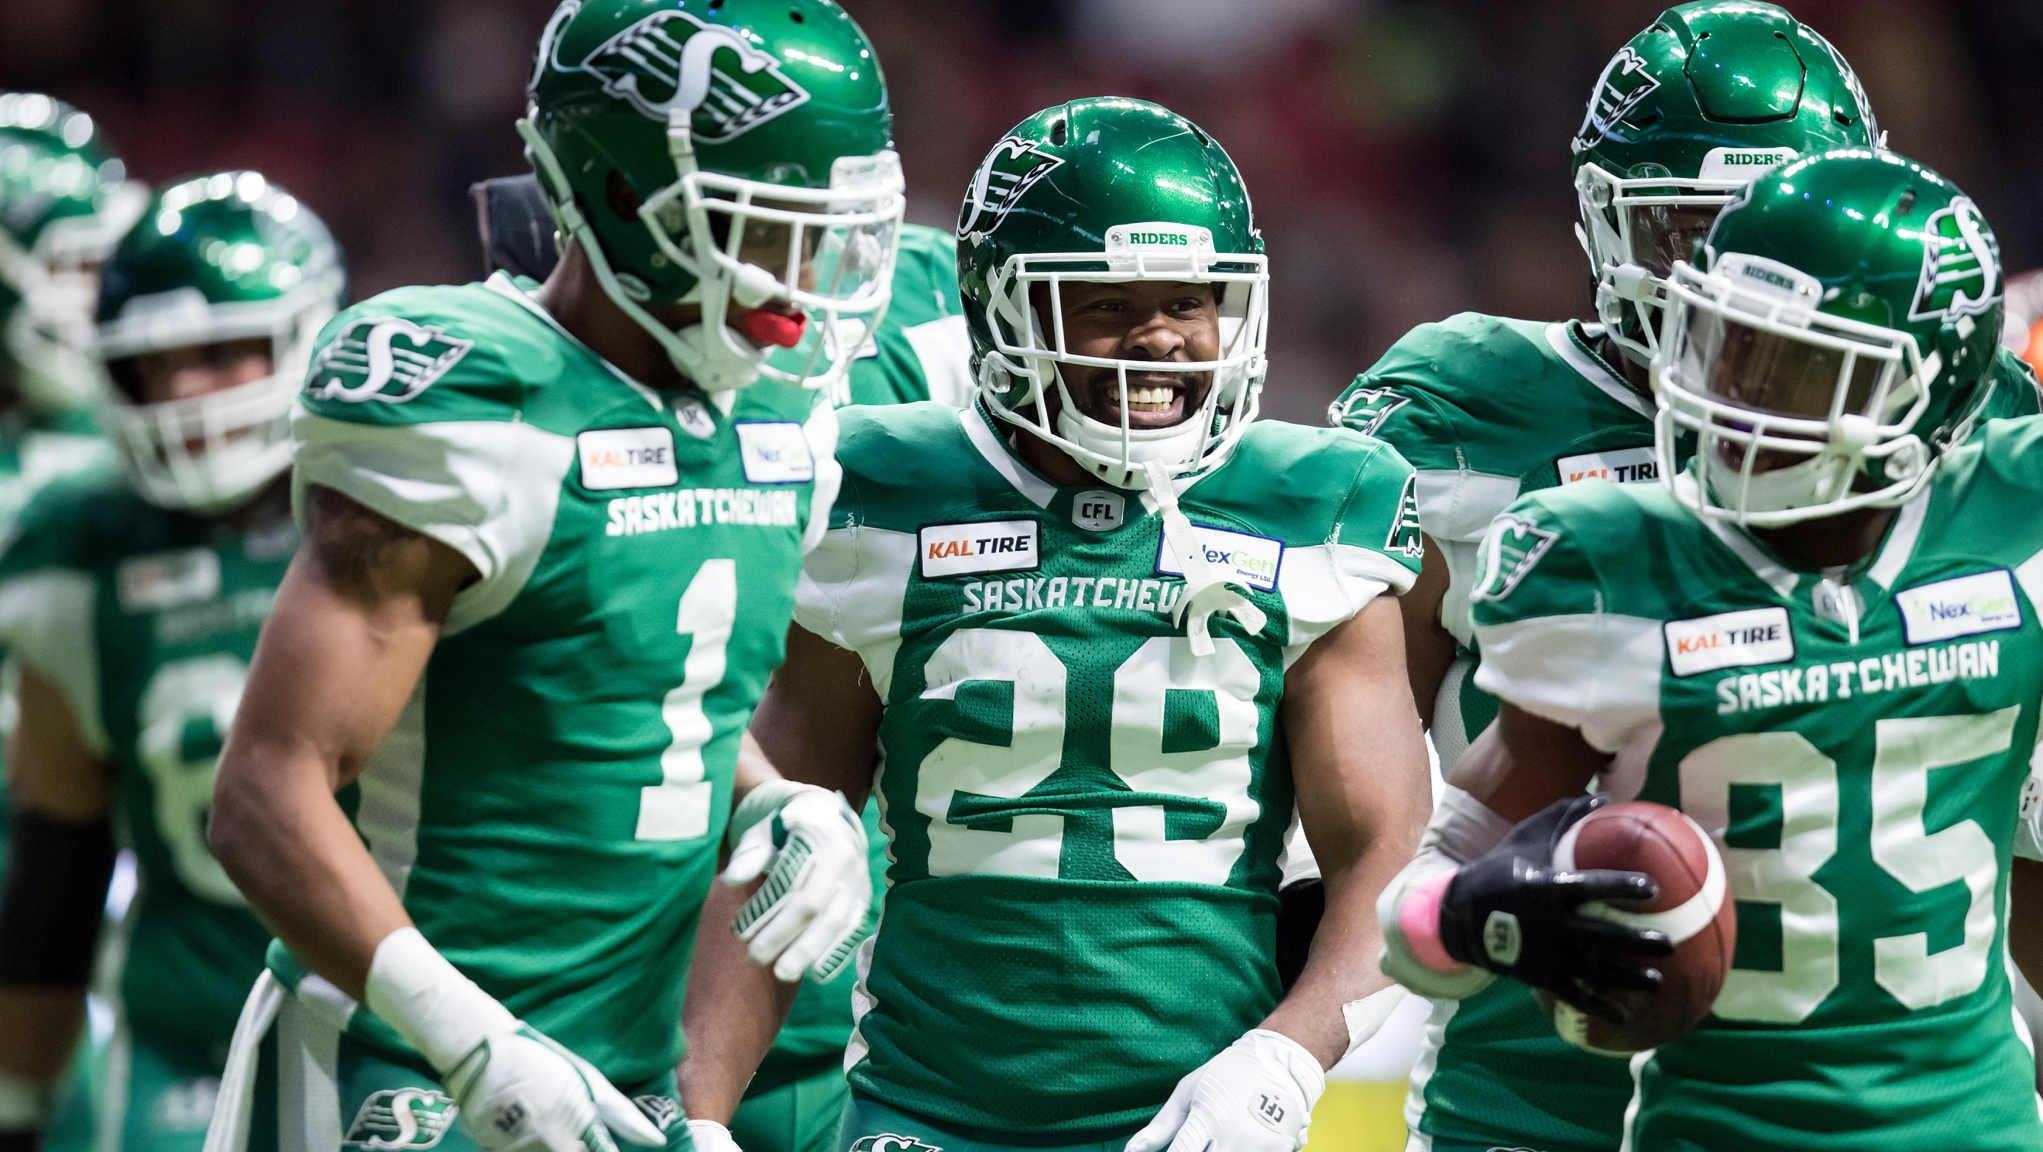 Riders' quest for first continues with win over Lions